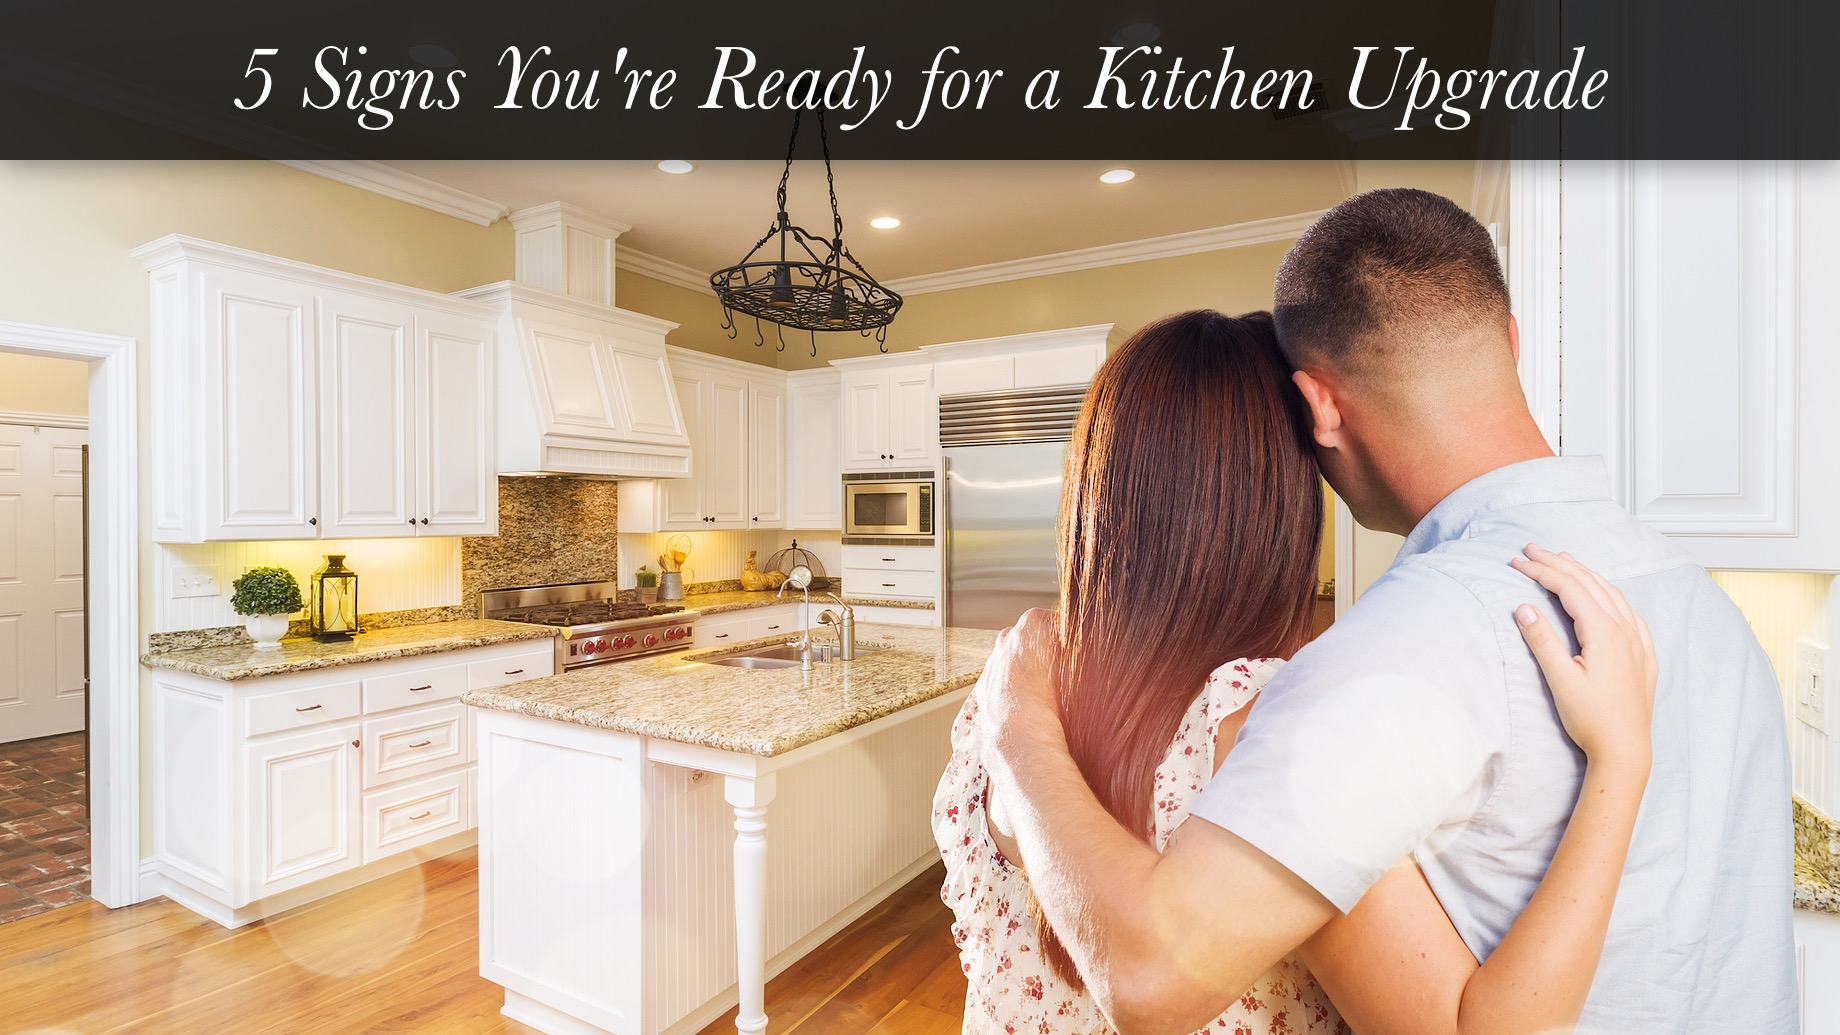 5 Signs You're Ready for a Kitchen Upgrade